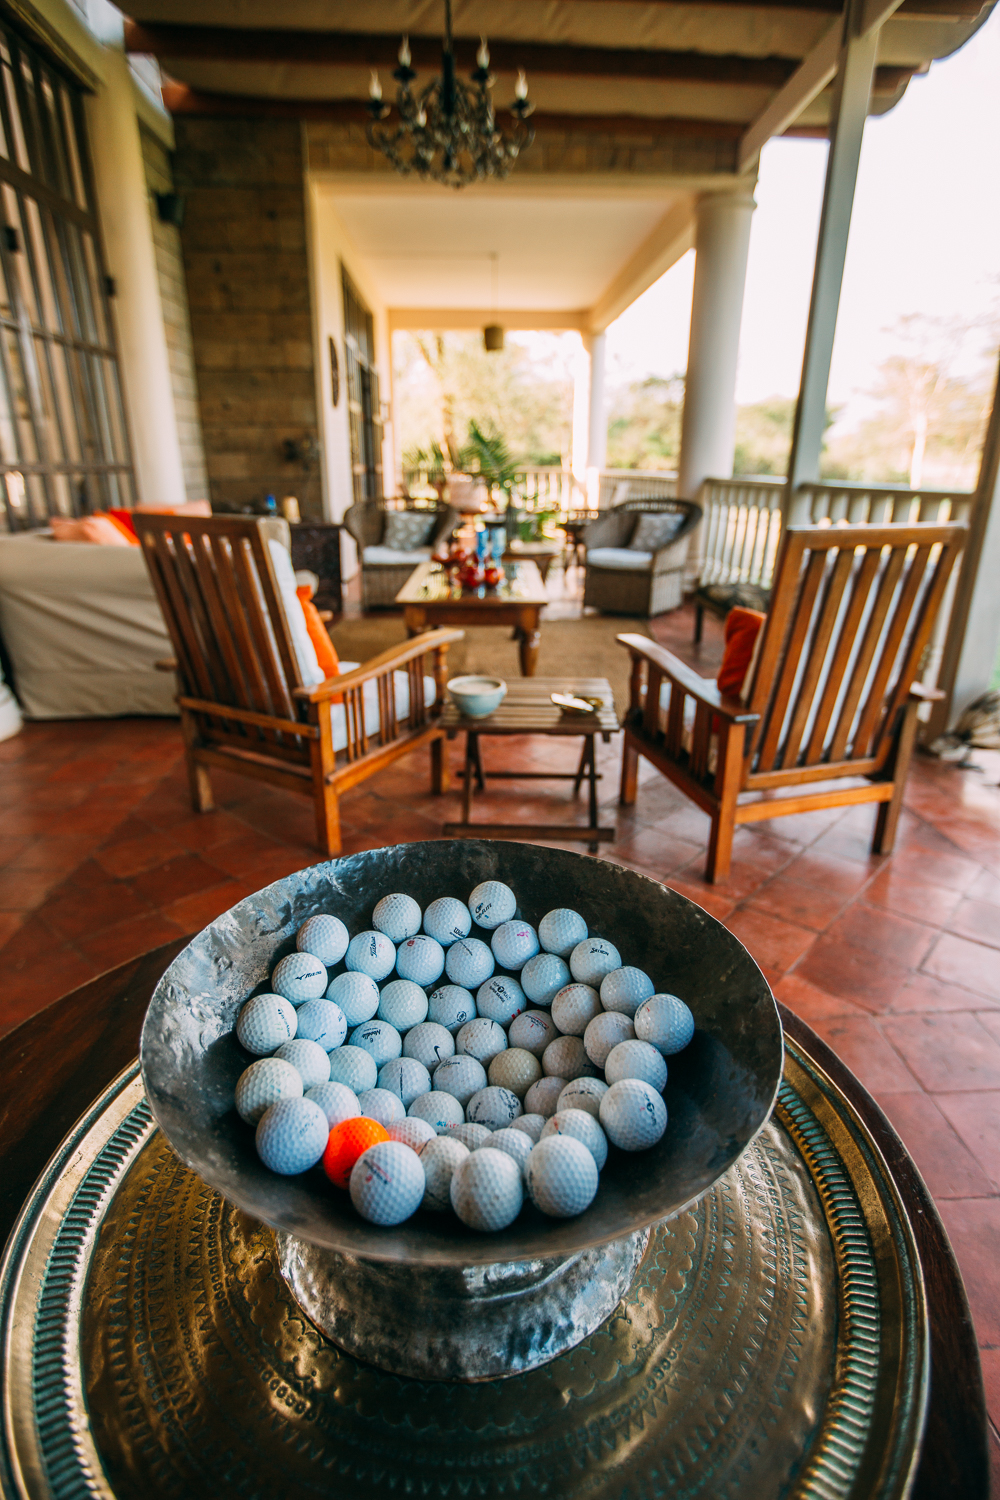 property_on_kiligolf_golfballs.jpg